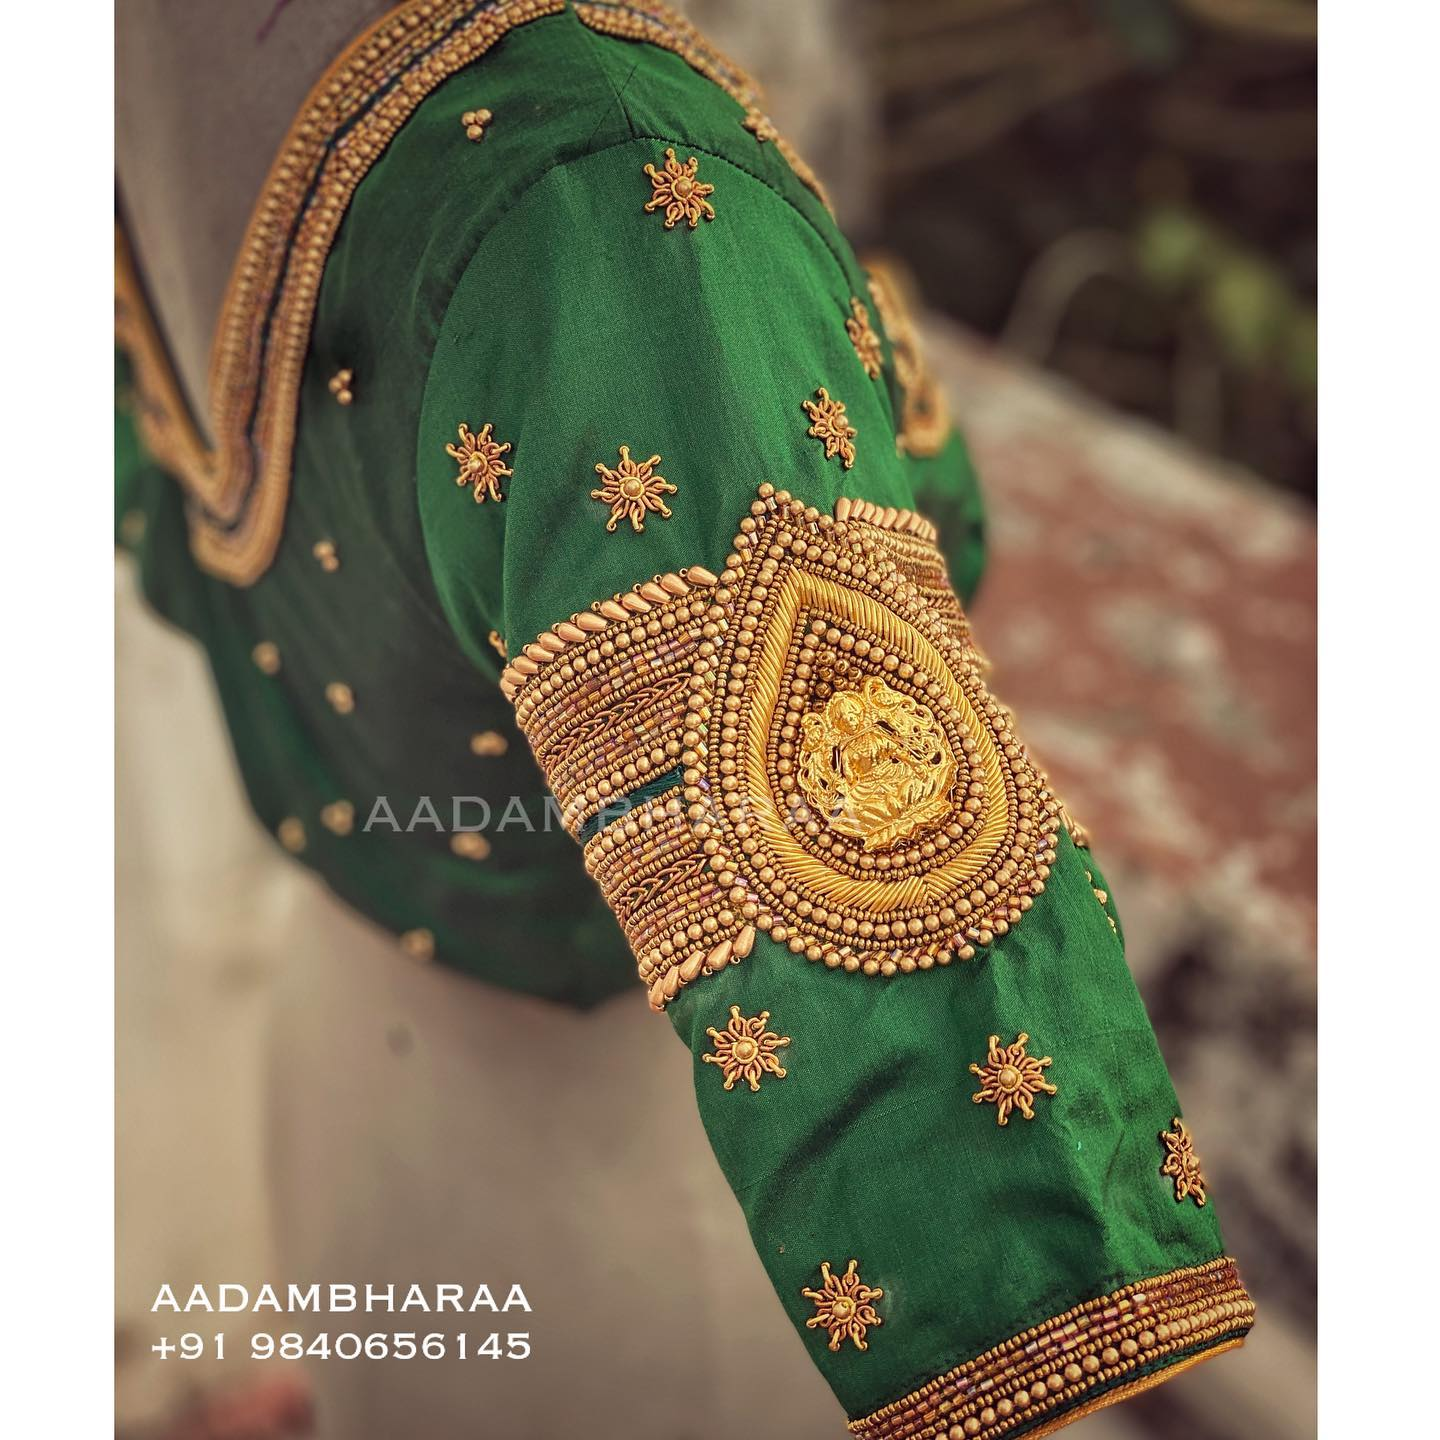 Green Bridal blouse. Stunning green color blouse with Lakshmi vanki design hand embroidery  gold thread and bead aari work on sleeves. 2021-05-17